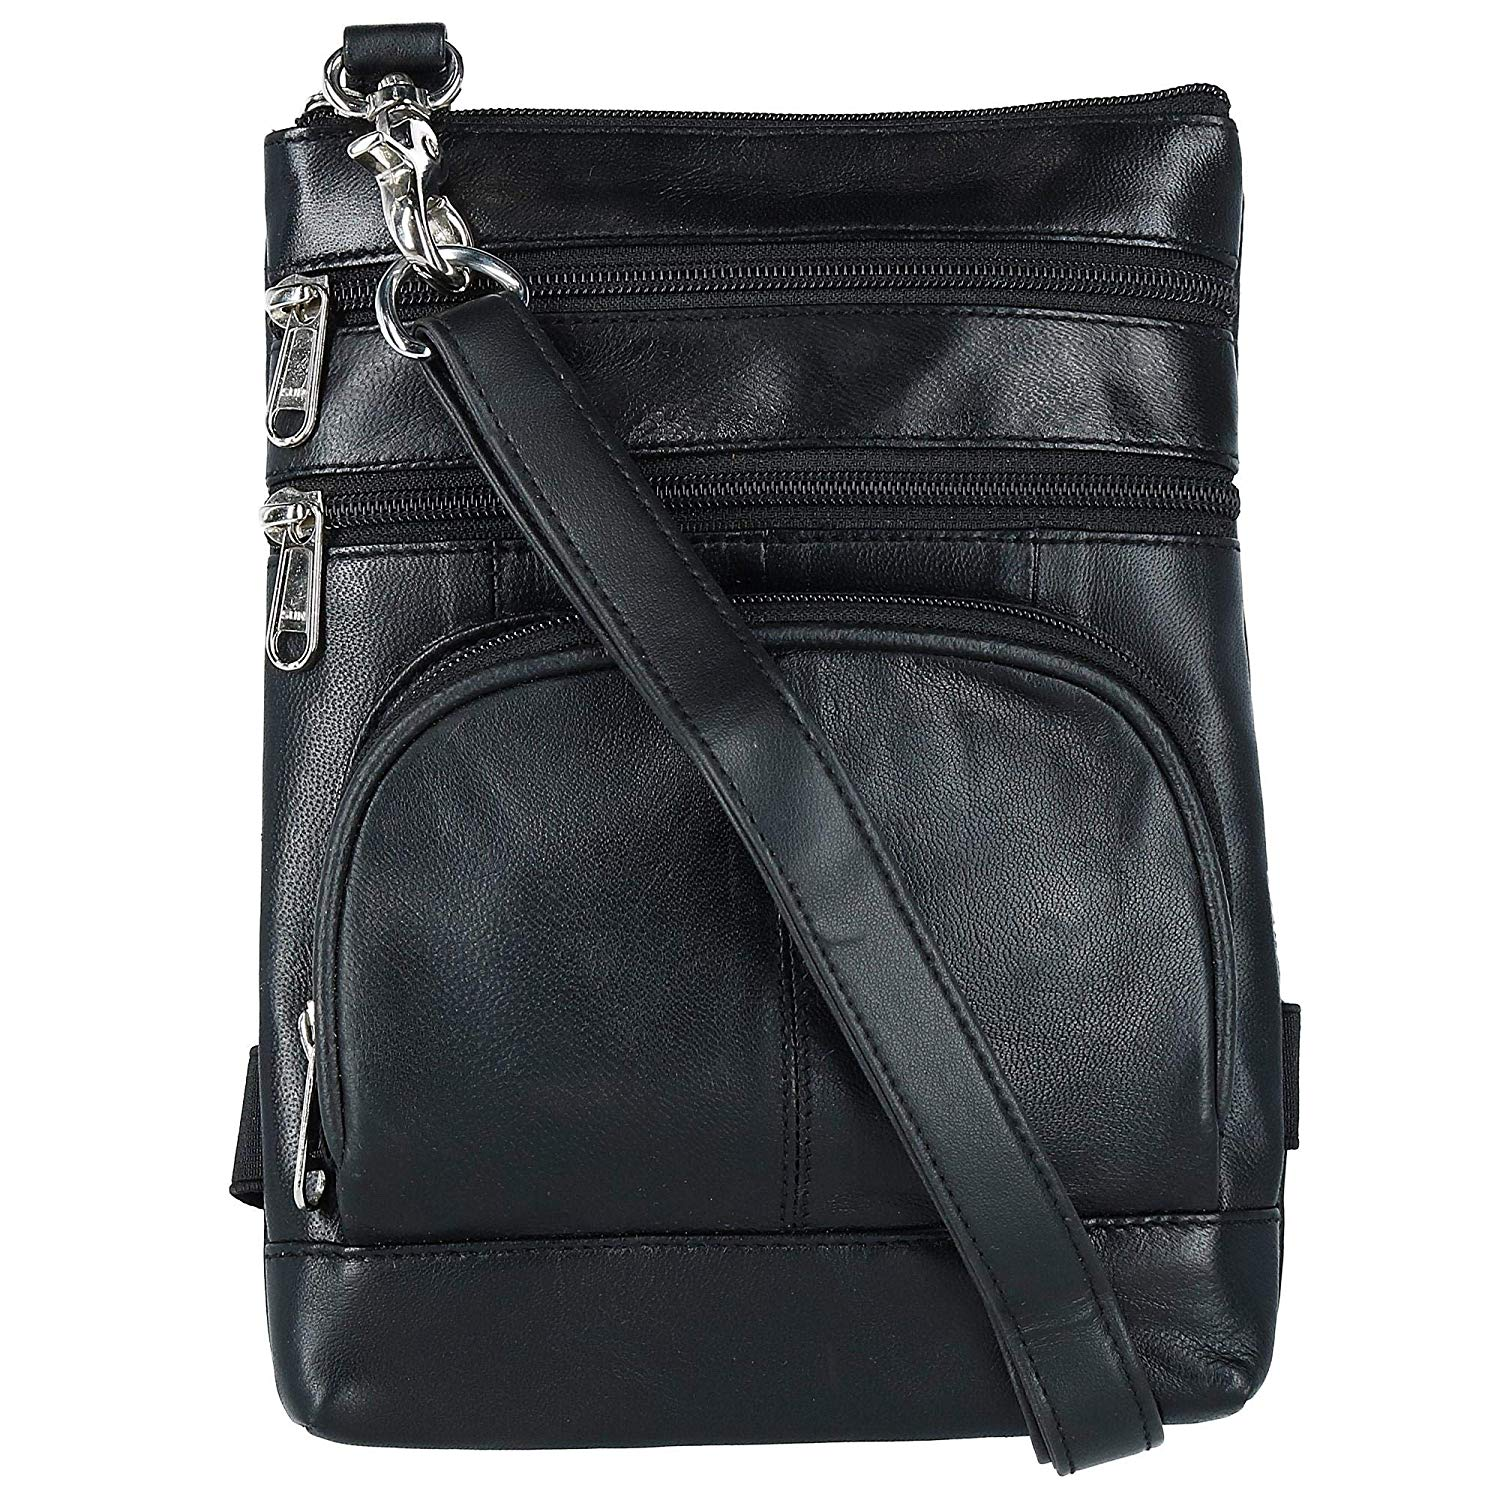 5026d6898c2c Cheap Thigh Strap Bag, find Thigh Strap Bag deals on line at Alibaba.com